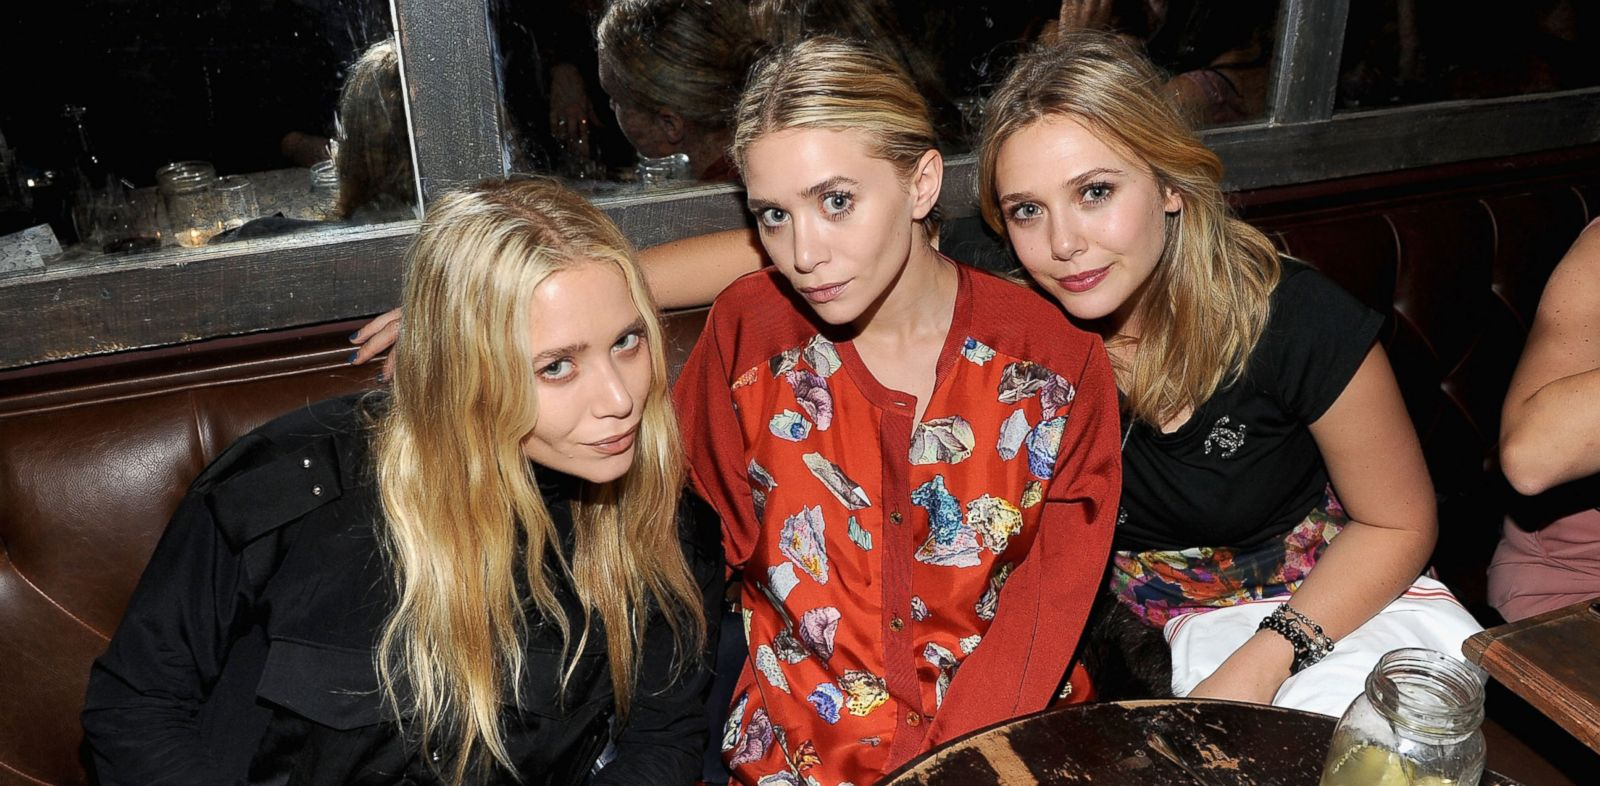 PHOTO: Mary-Kate Olsen, Ashley Olsen and Elizabeth Olsen attend the NYLON & AX Armani Exchange Private Dinner for the October issue with cover star Lizzie Olsen, Oct. 5, 2011 in New York City.